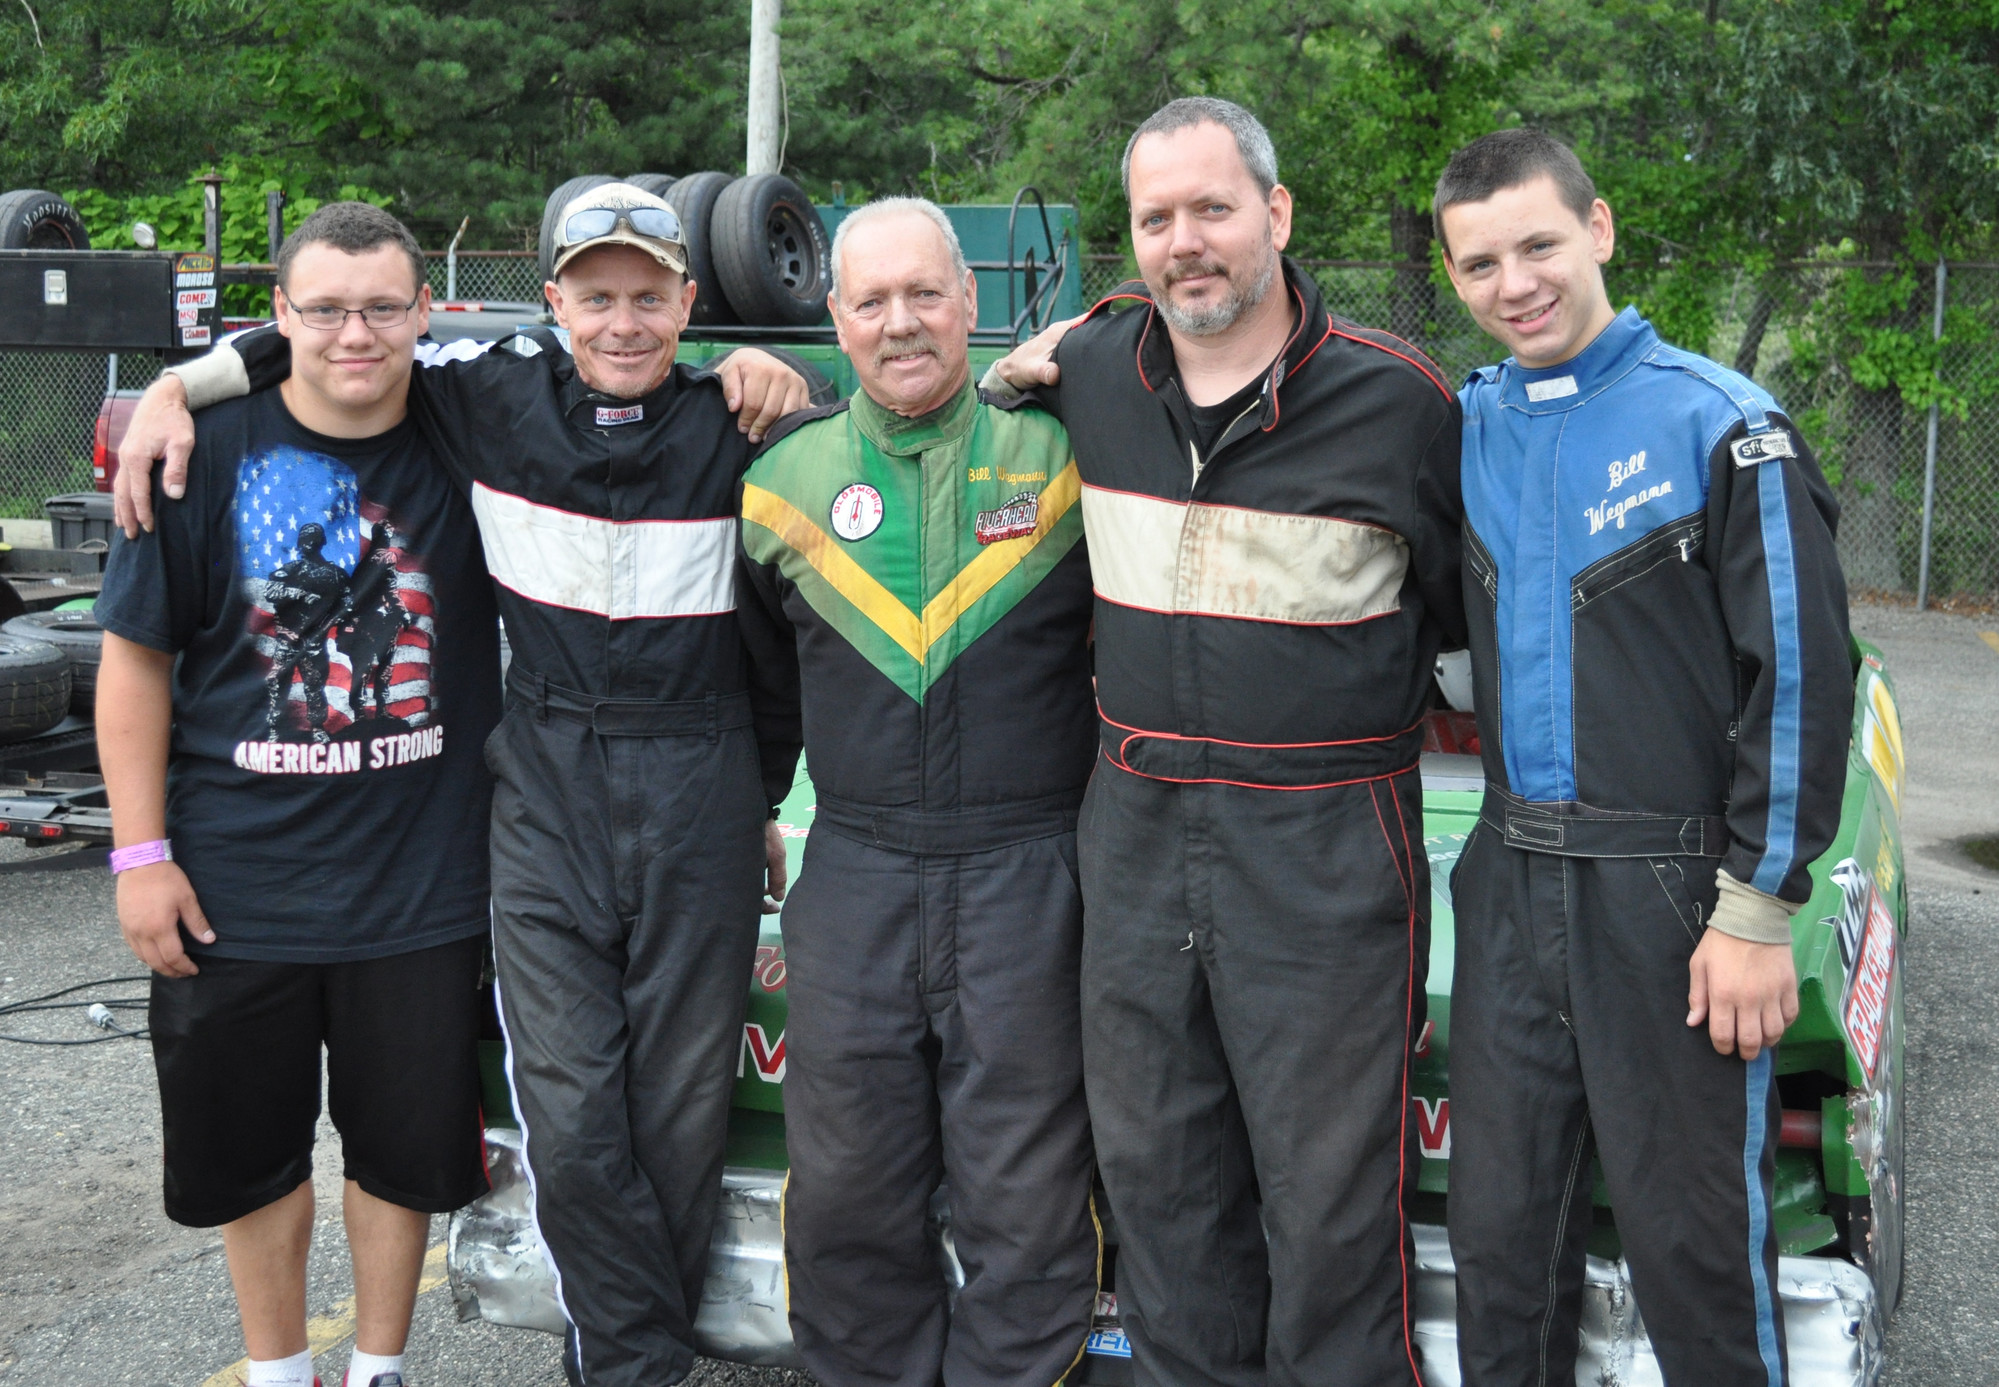 William Wegmann, center, with from left, grandson Andrew, stepson Ray Shannon, son William, and grandson Derek, is still racing strong at nearly 70 years old.